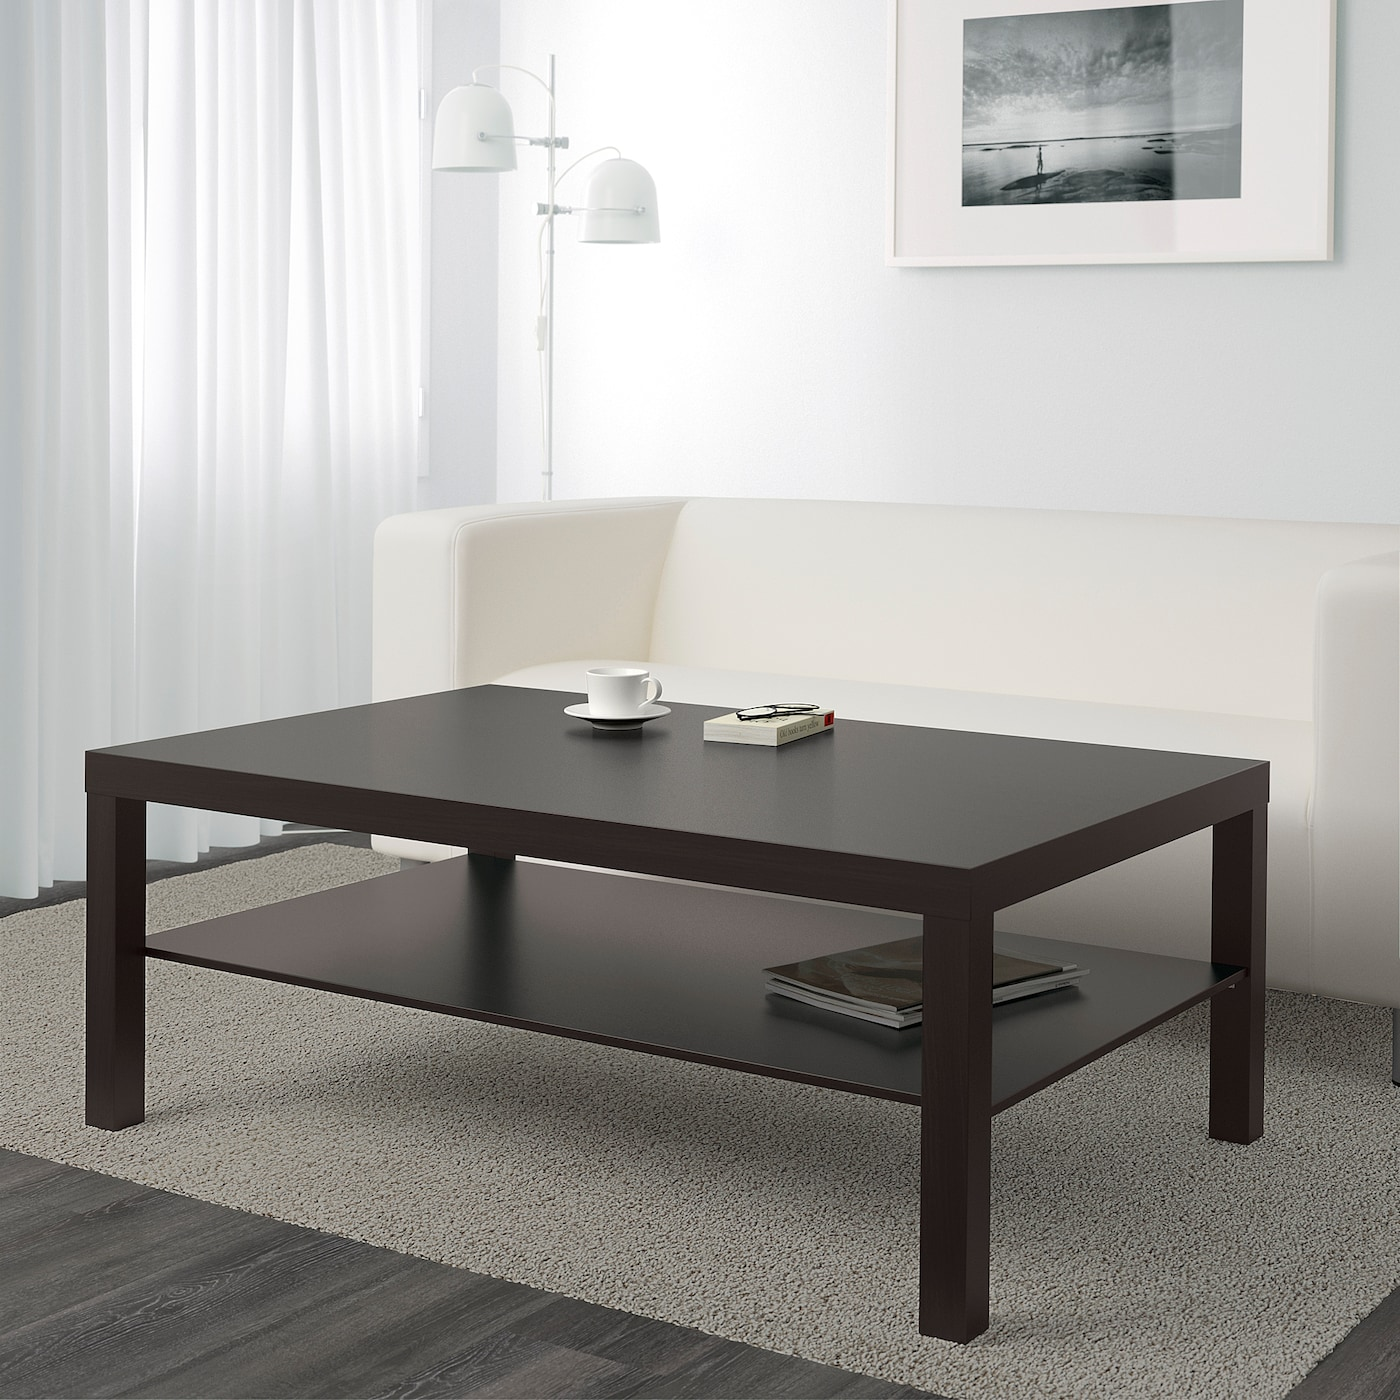 Lack Coffee Table Black Brown 46 1